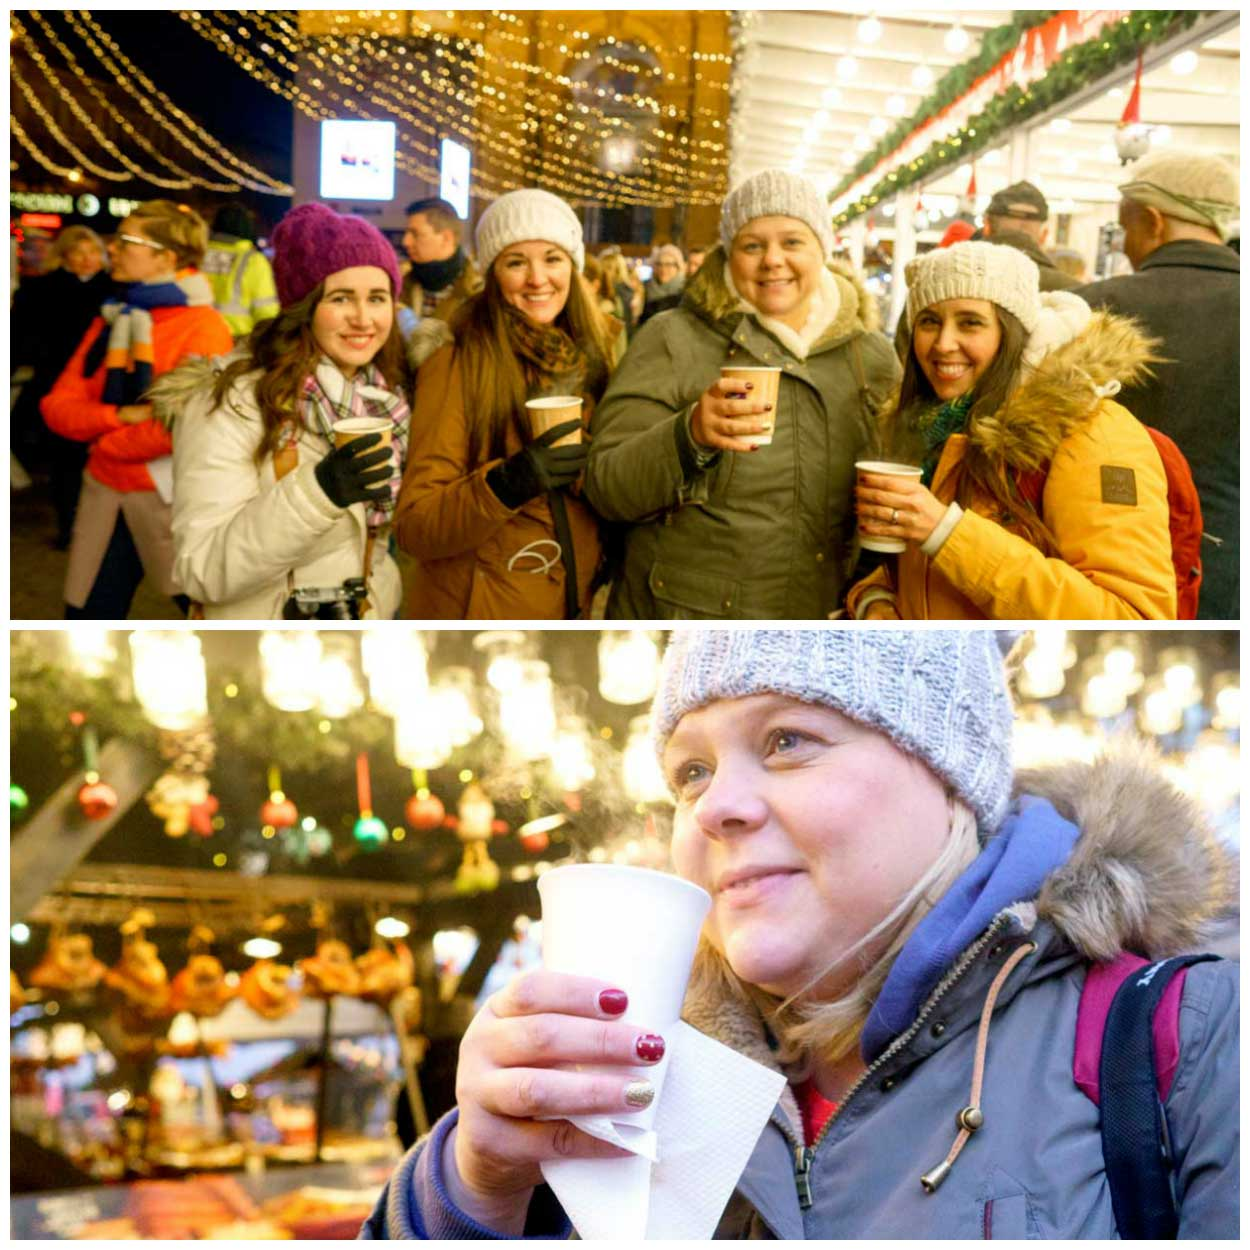 A collage of drinking Kinder Punch at a Christmas market